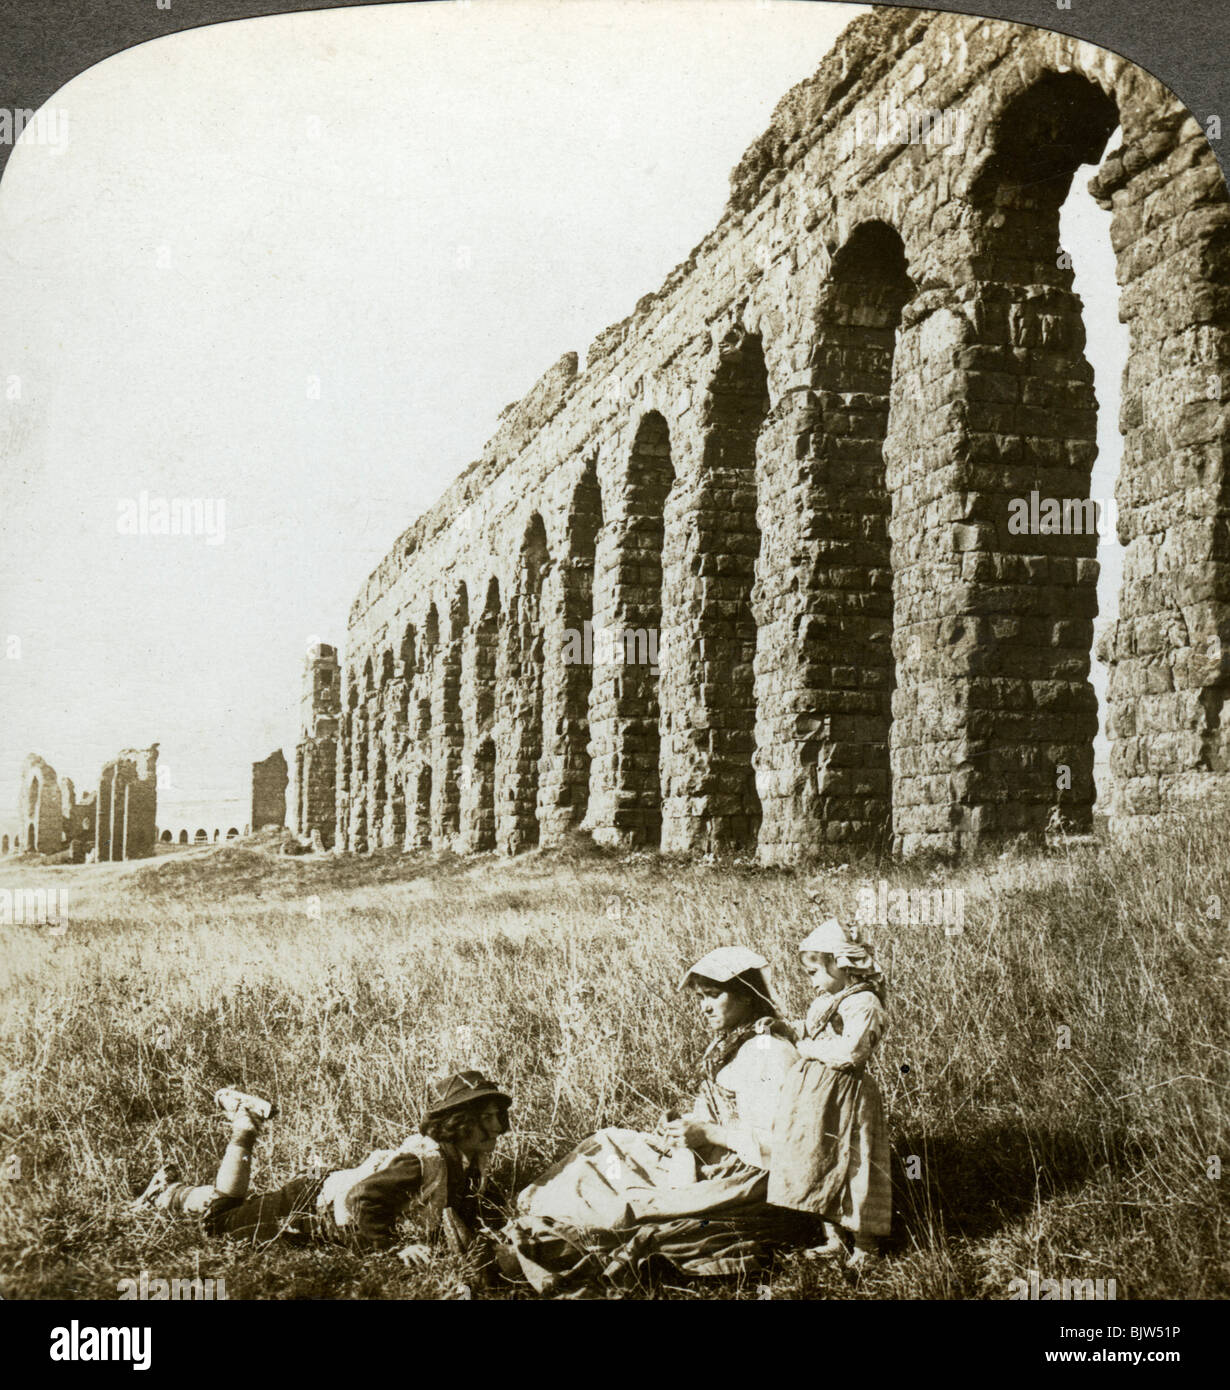 Aqueduct of Claudius and the Campagna, Rome, Italy. - Stock Image